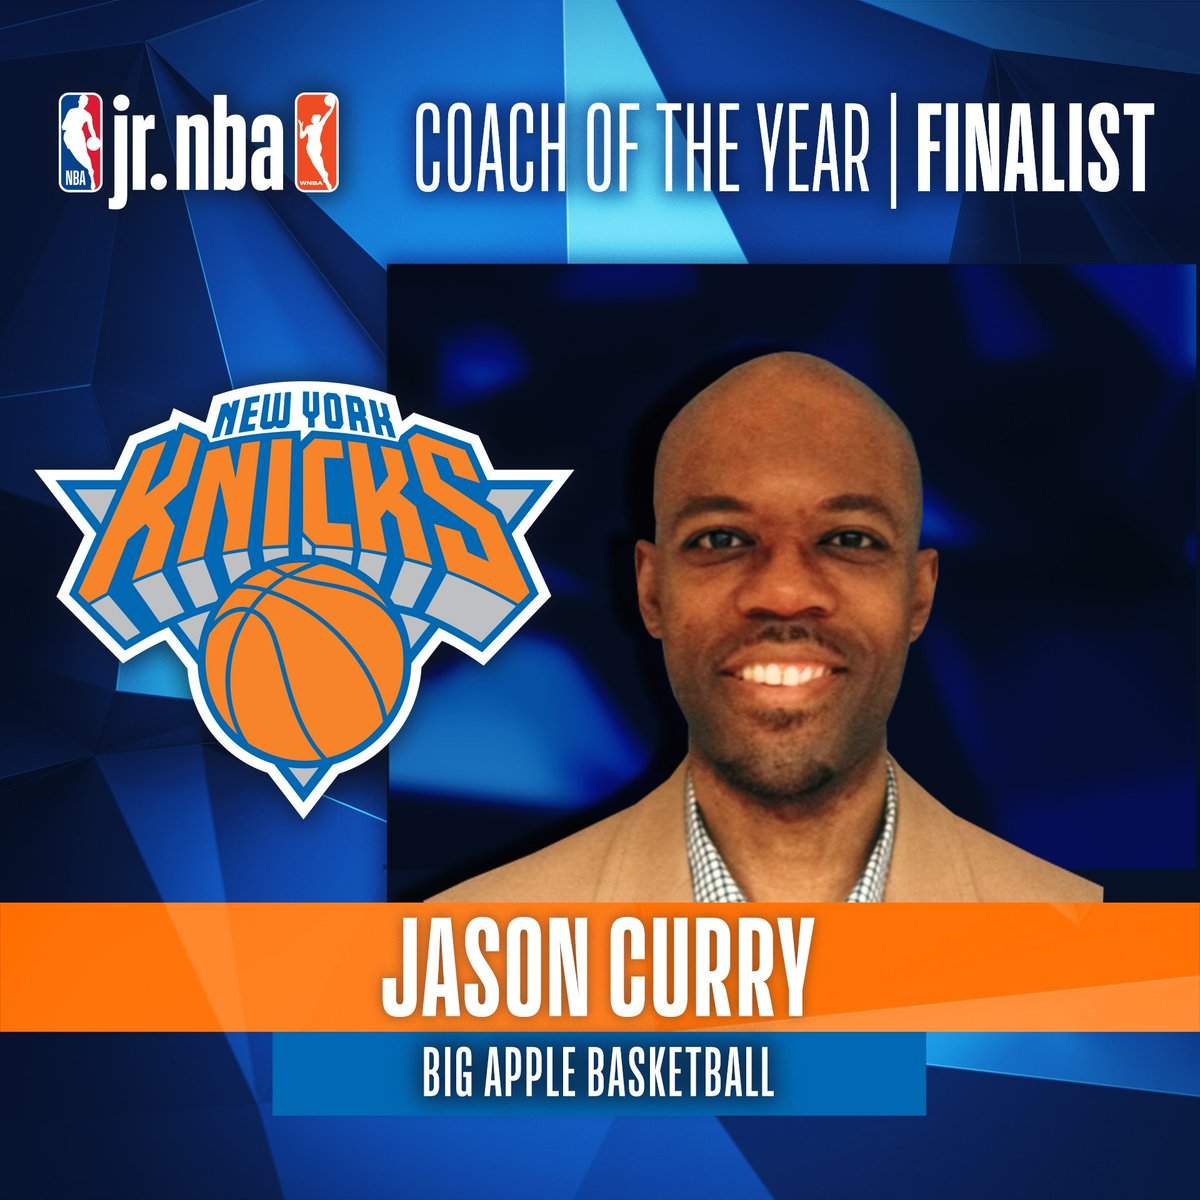 A finalist for 2019 #JrNBACOY is Jason Curry. Coach Jason, nominated by @nyknicks, runs Big Apple Basketball in NYC helping youth fulfill their dreams! Jr. NBA Coach of the Year will be announced at the Jr. NBA Youth Basketball Leadership Conference!   ➡️ http://on.nba.com/2Ga8z7J